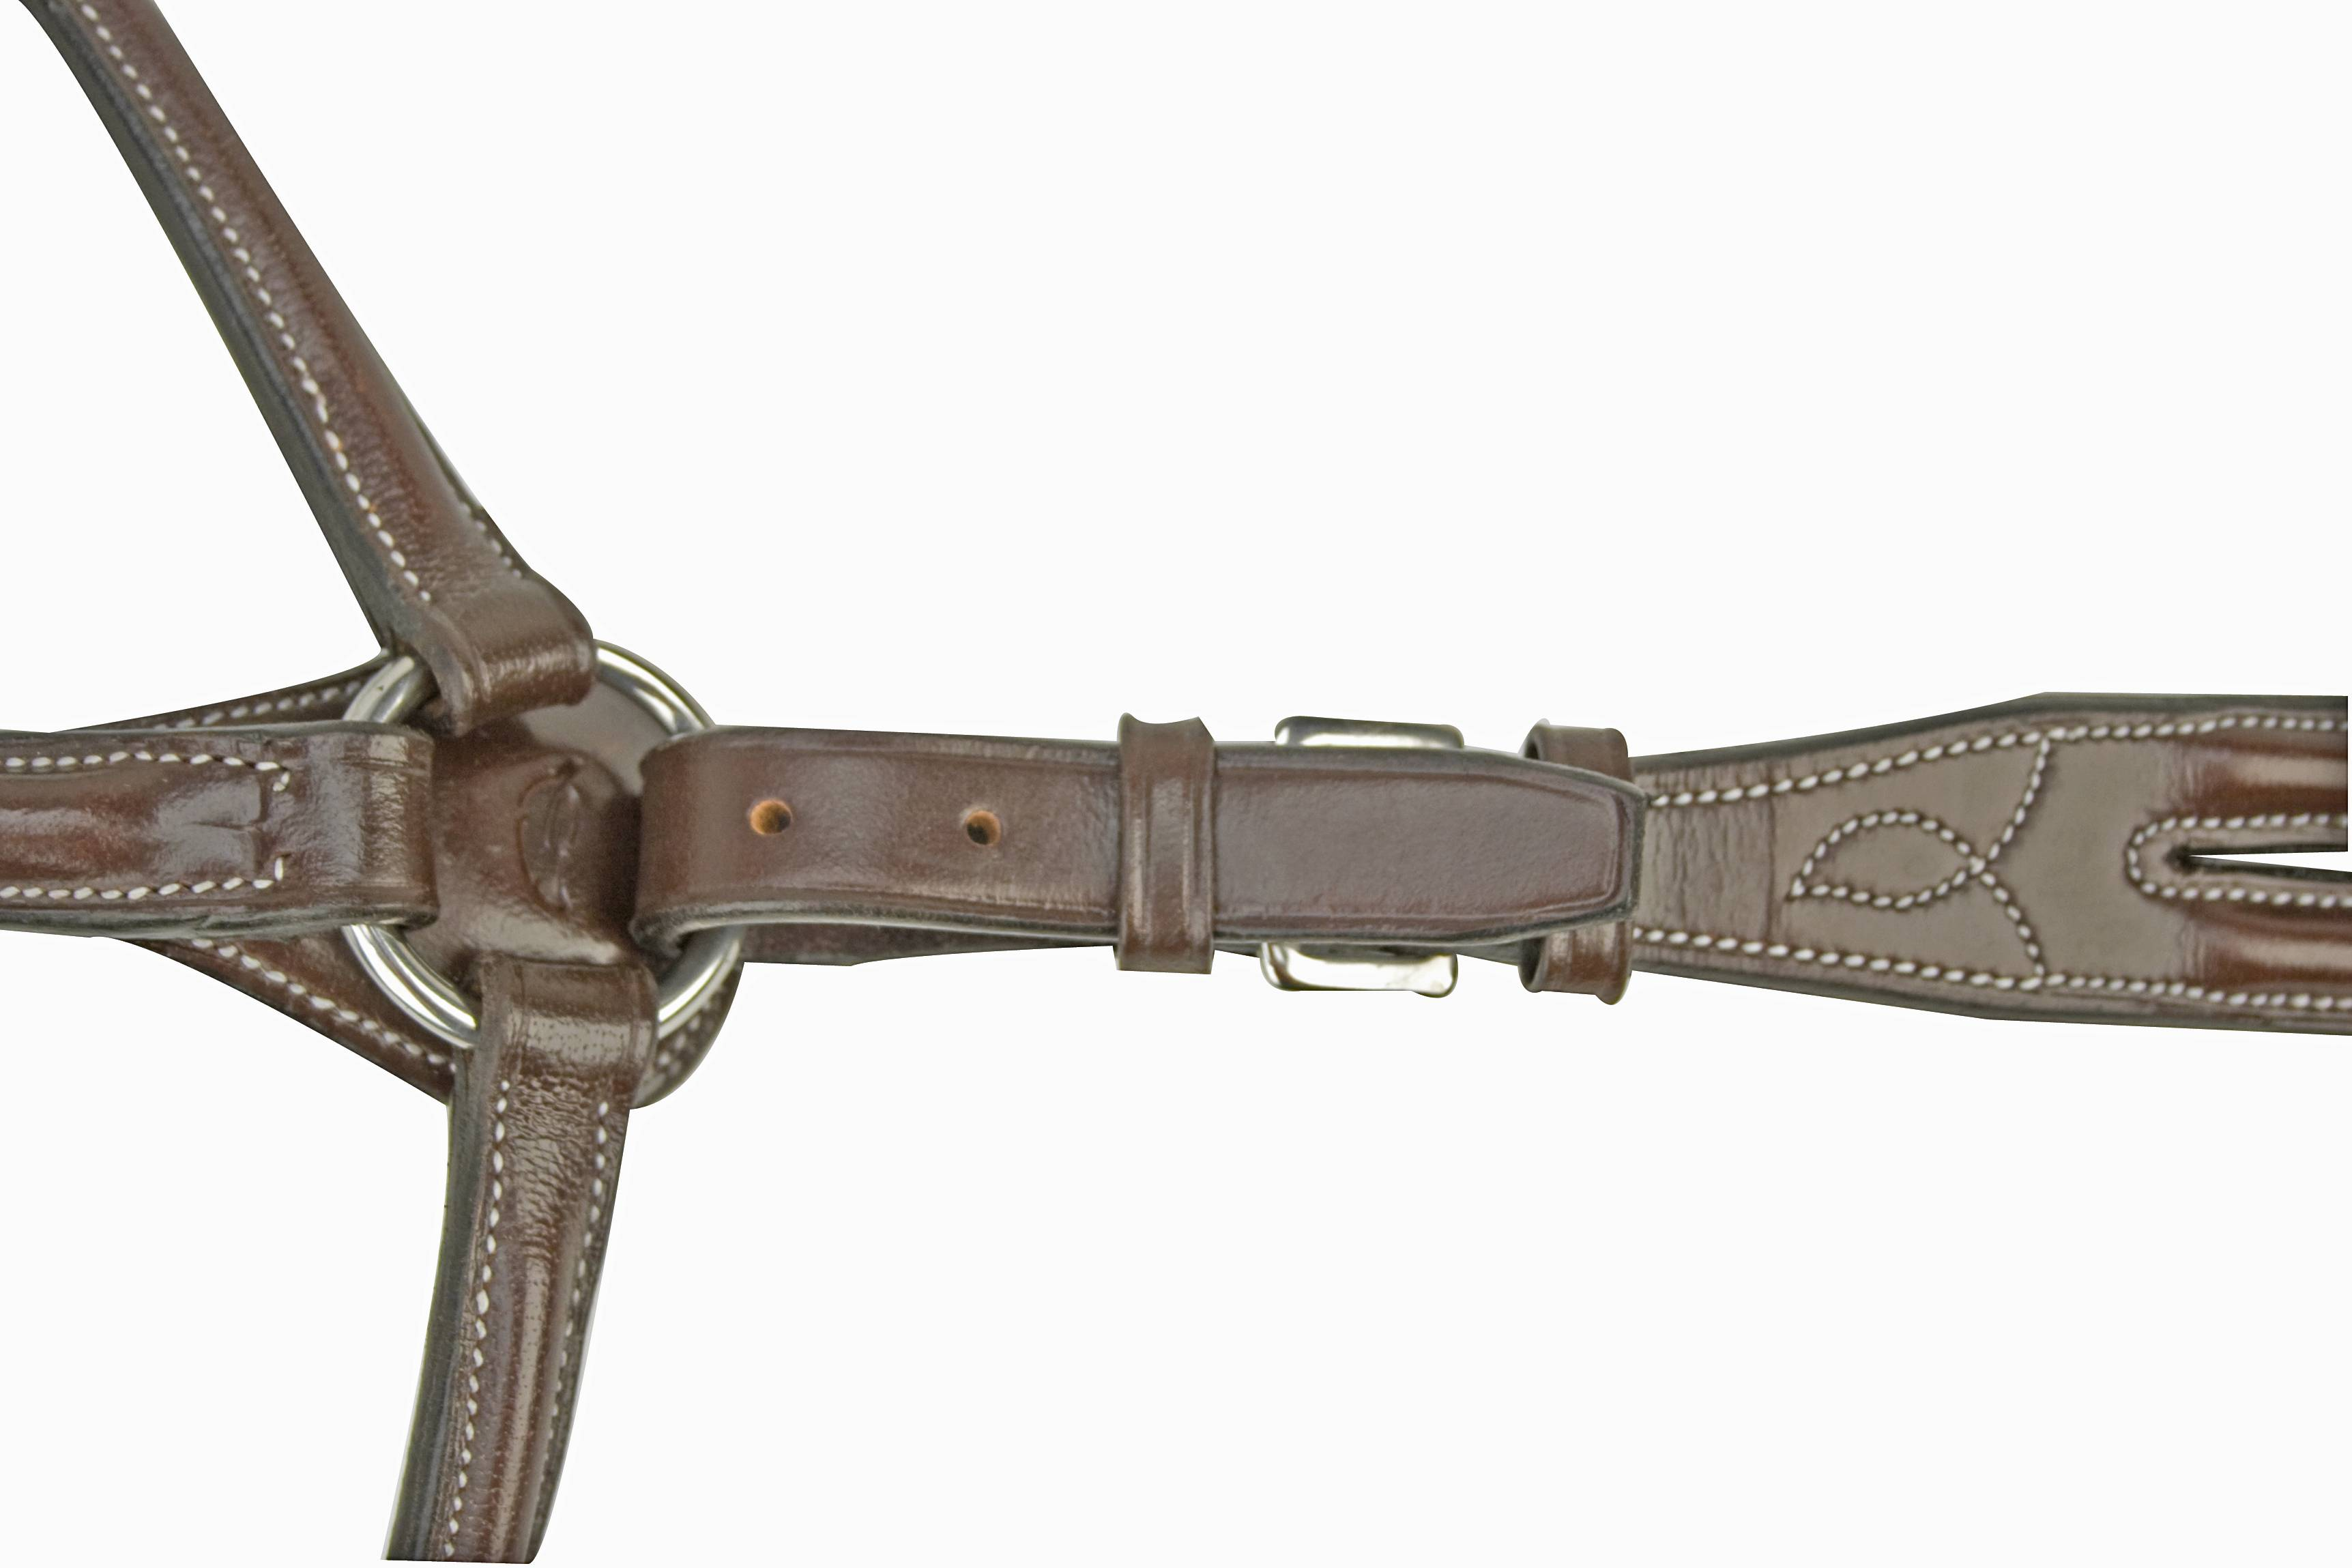 Silverleaf Fancy Raised Breastplate with Standing Attachment